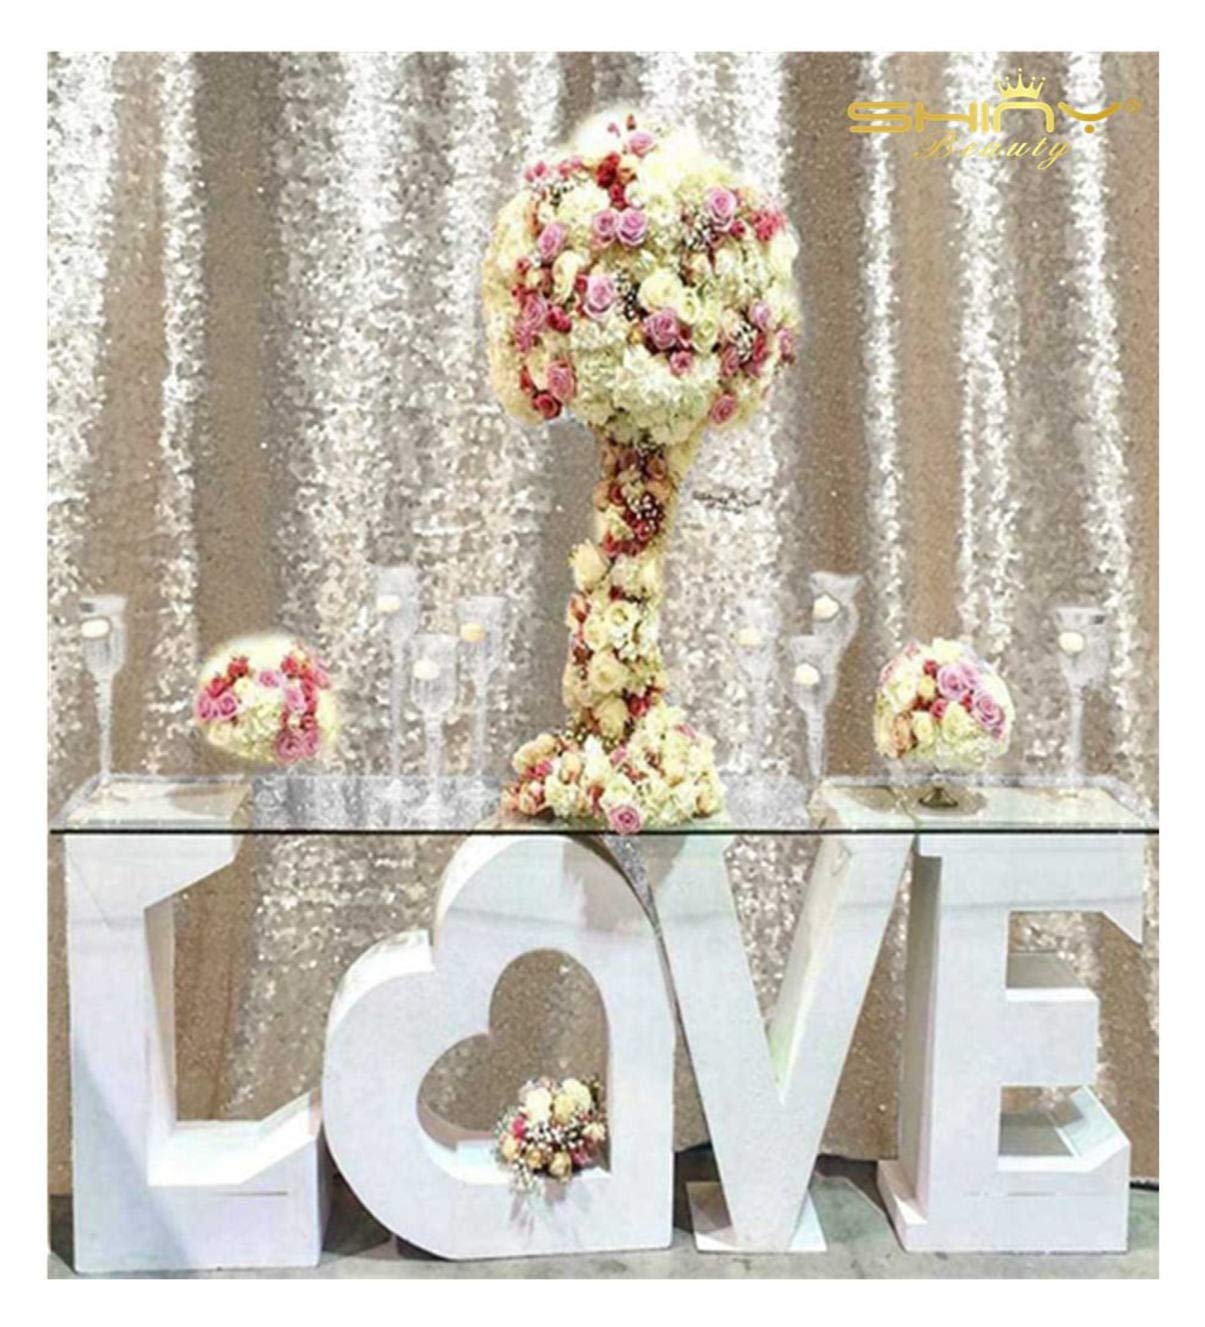 PHOTOBOOTH Background Best Choice-7FTx7FT-Champagne-Sequin Photography Backdrop Curtains for Wedding by ShinyBeauty